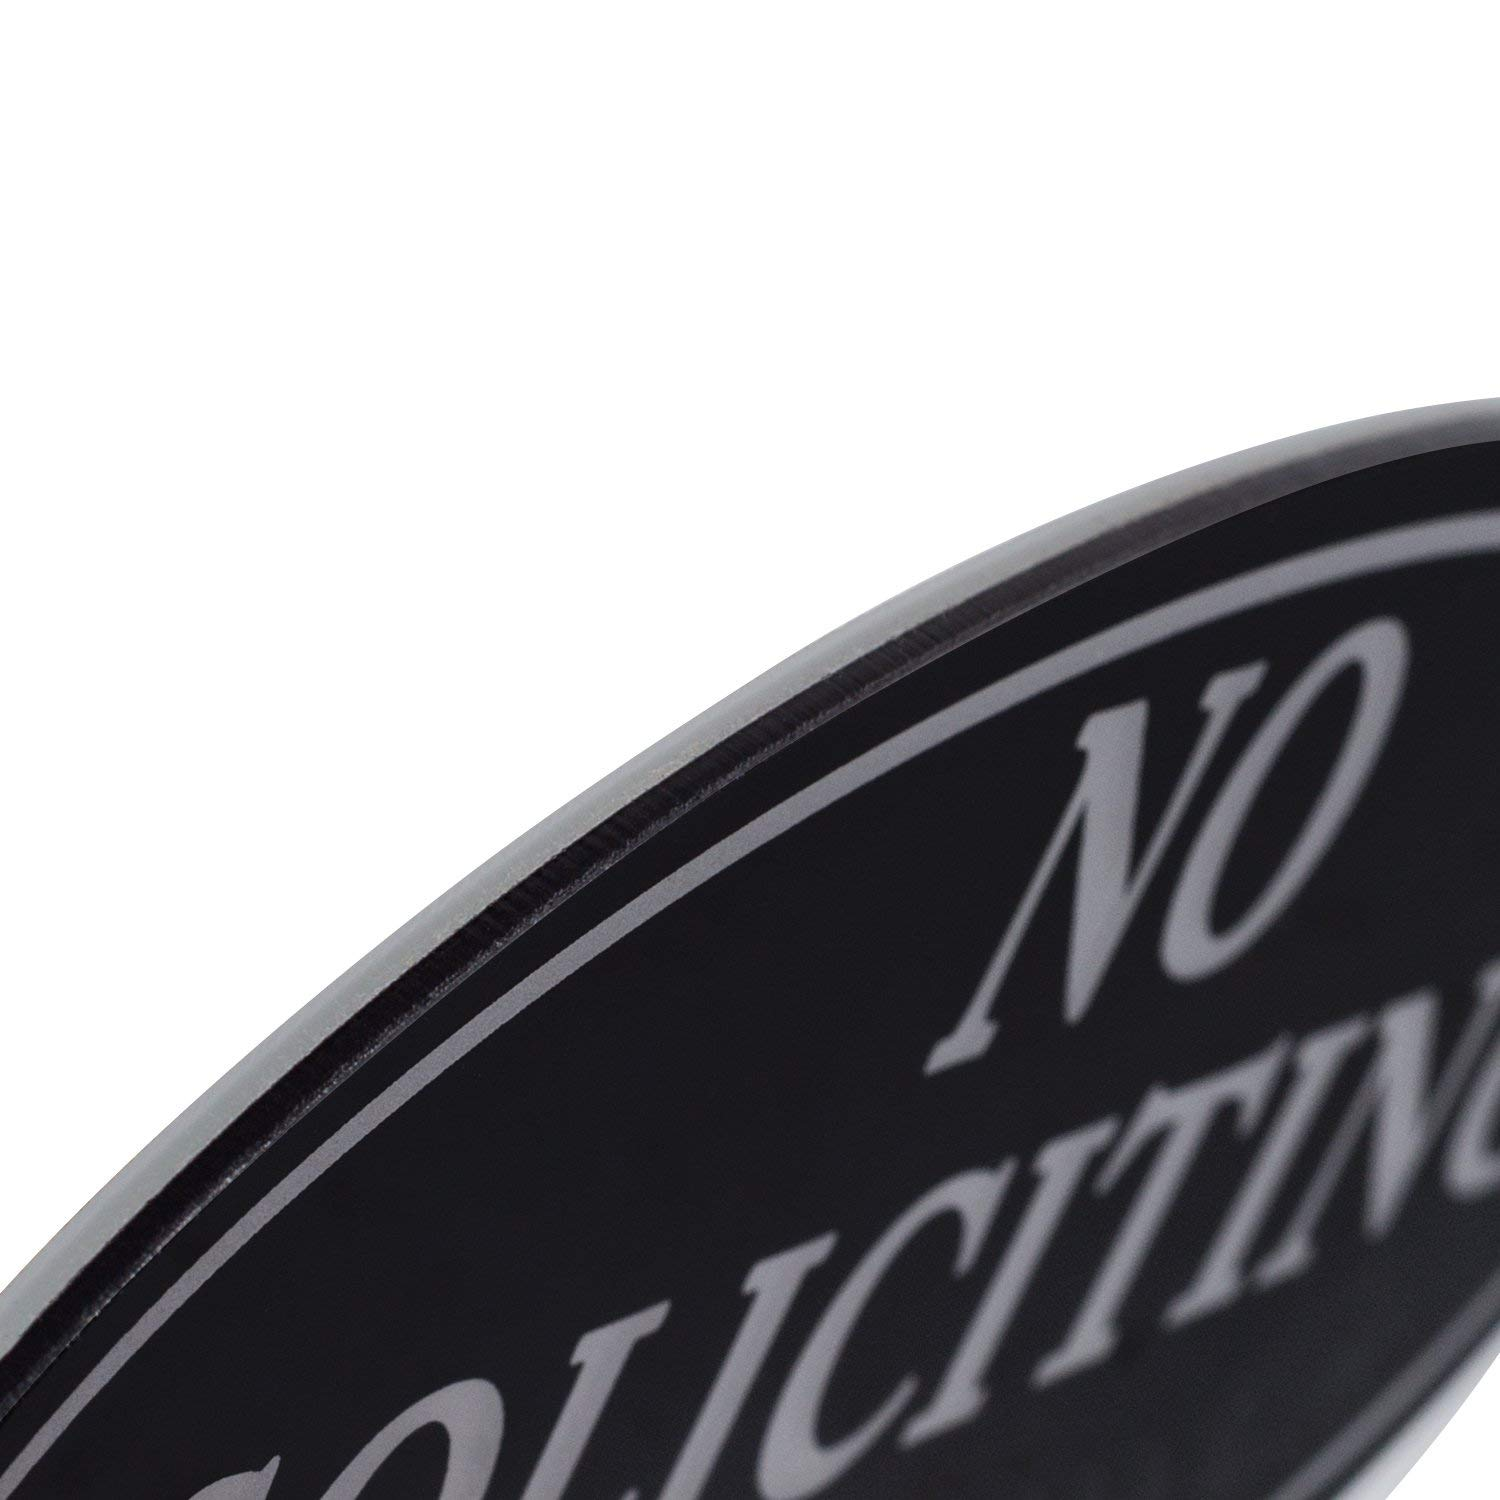 """No Soliciting Sign with Magnets on The Back, Black, 2.8"""" x 7"""", Keeps Unwanted Visitors Away, No Deforming, Residue Free Adhesive Included by Kichwit (Image #2)"""